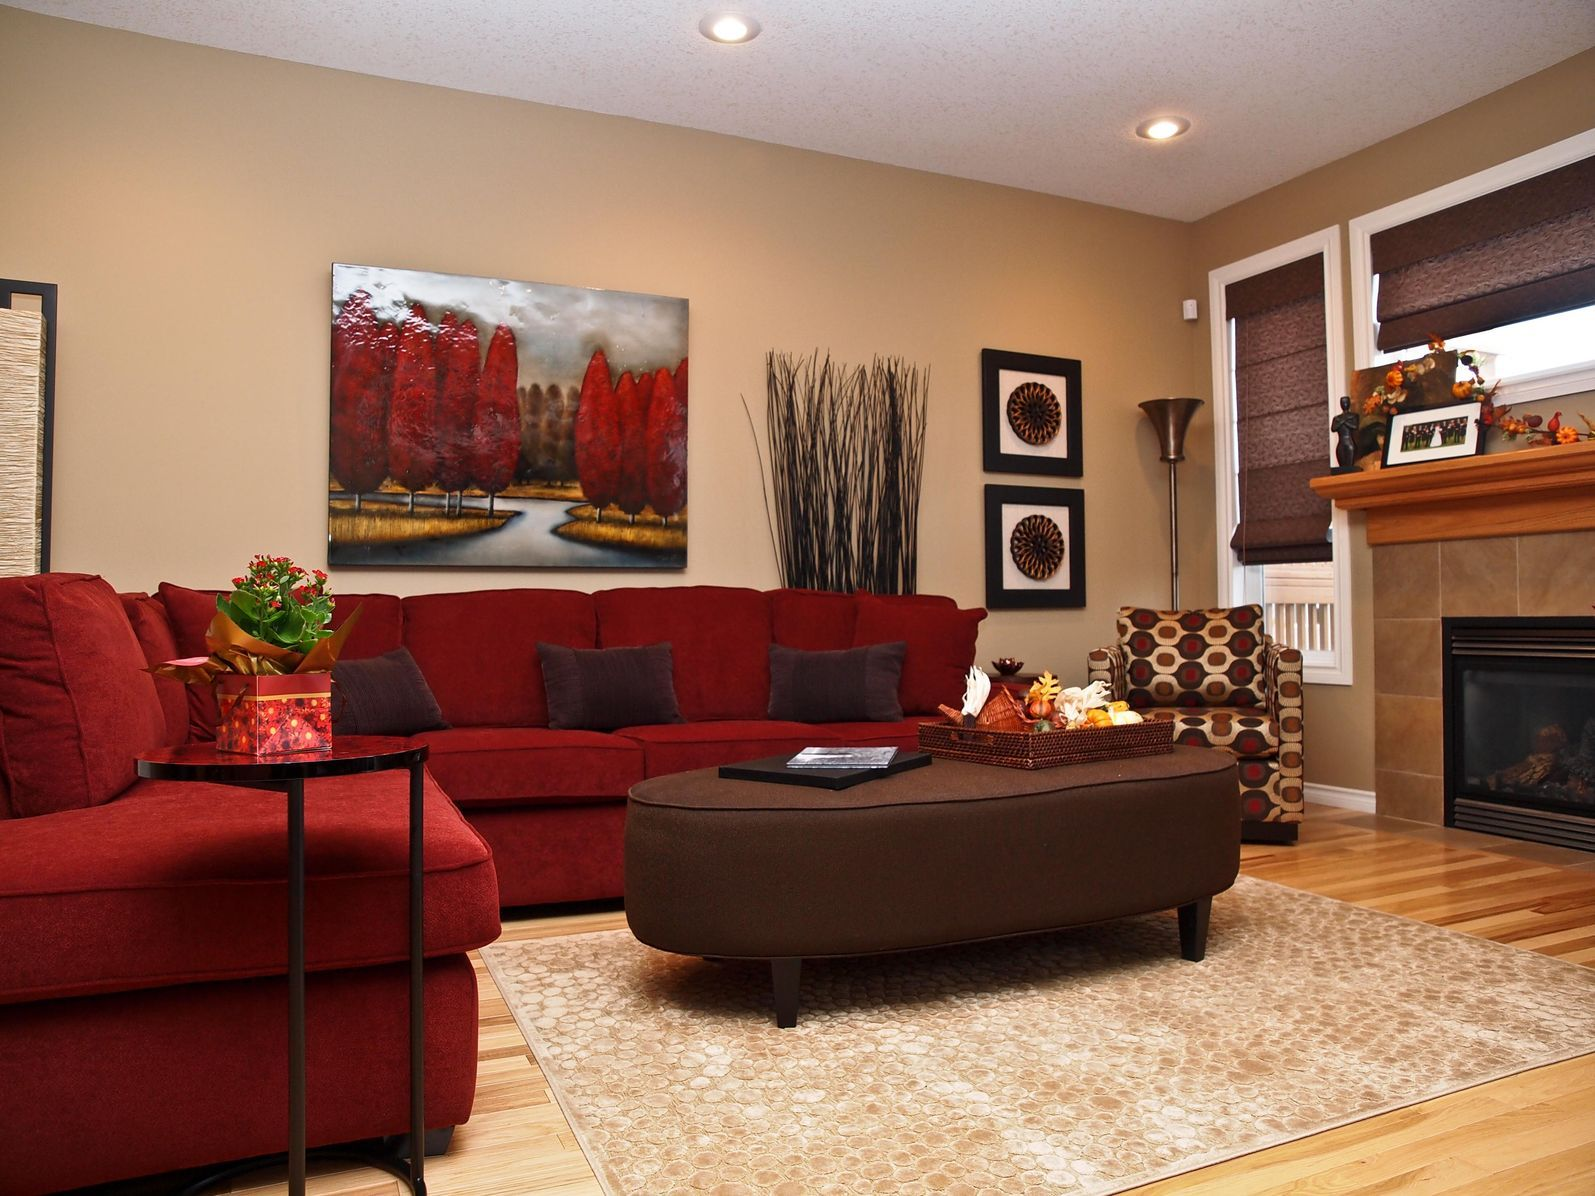 Living Room With Red Sofa 25 Best Ideas About Red Couch Living Room On Pinterest Red